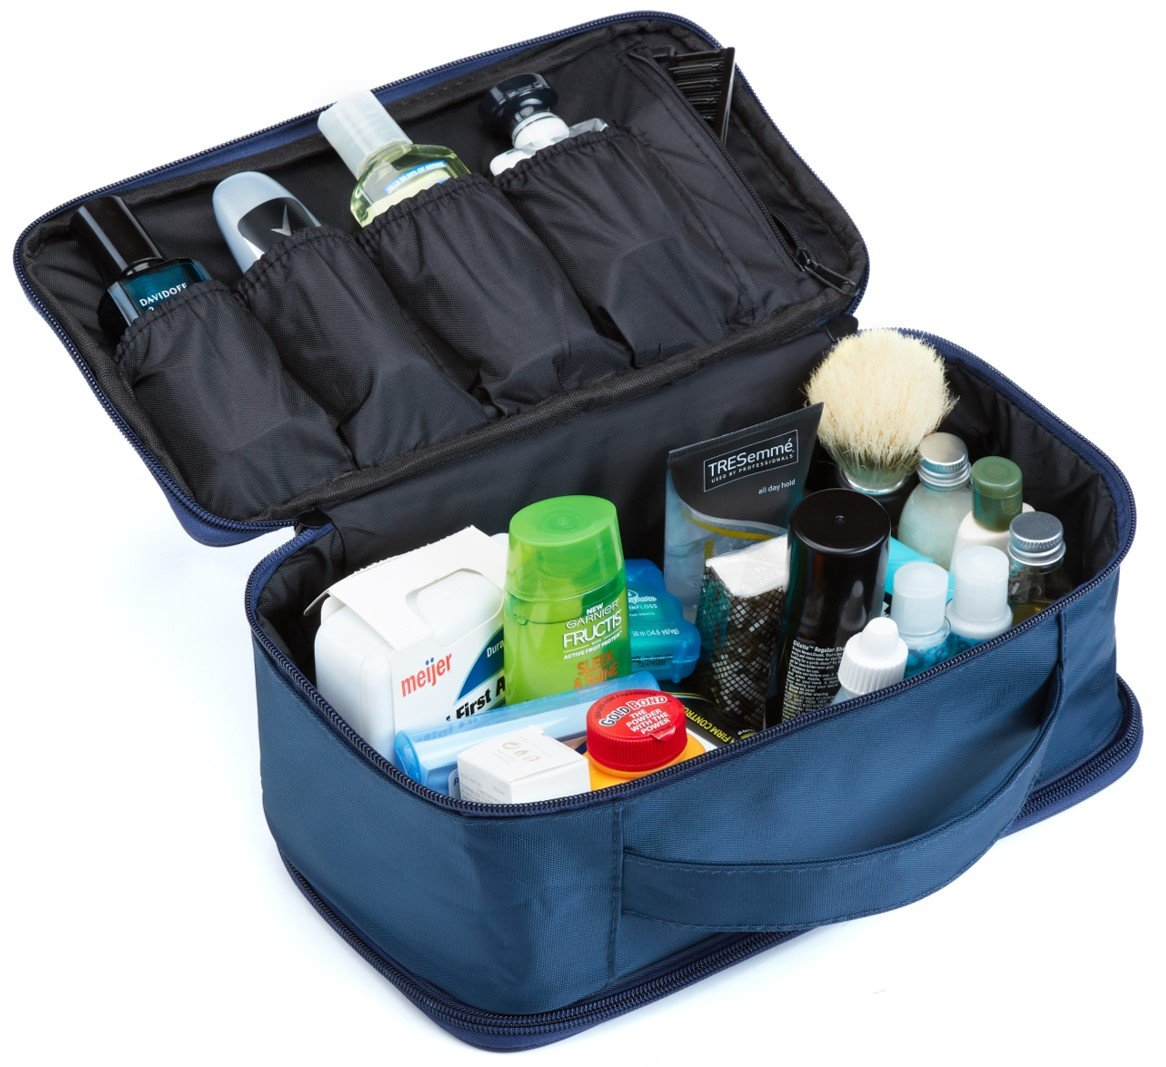 Mens Travel Toiletry Bag for Men Travel Case for Toiletries Bag by Ramaka Solutions Dopp Kit Travel Bags for Toiletries Stain Proof Nylon Toiletry Bag for Women 10.5 X 5 X 5.5 Inches Navy Blue